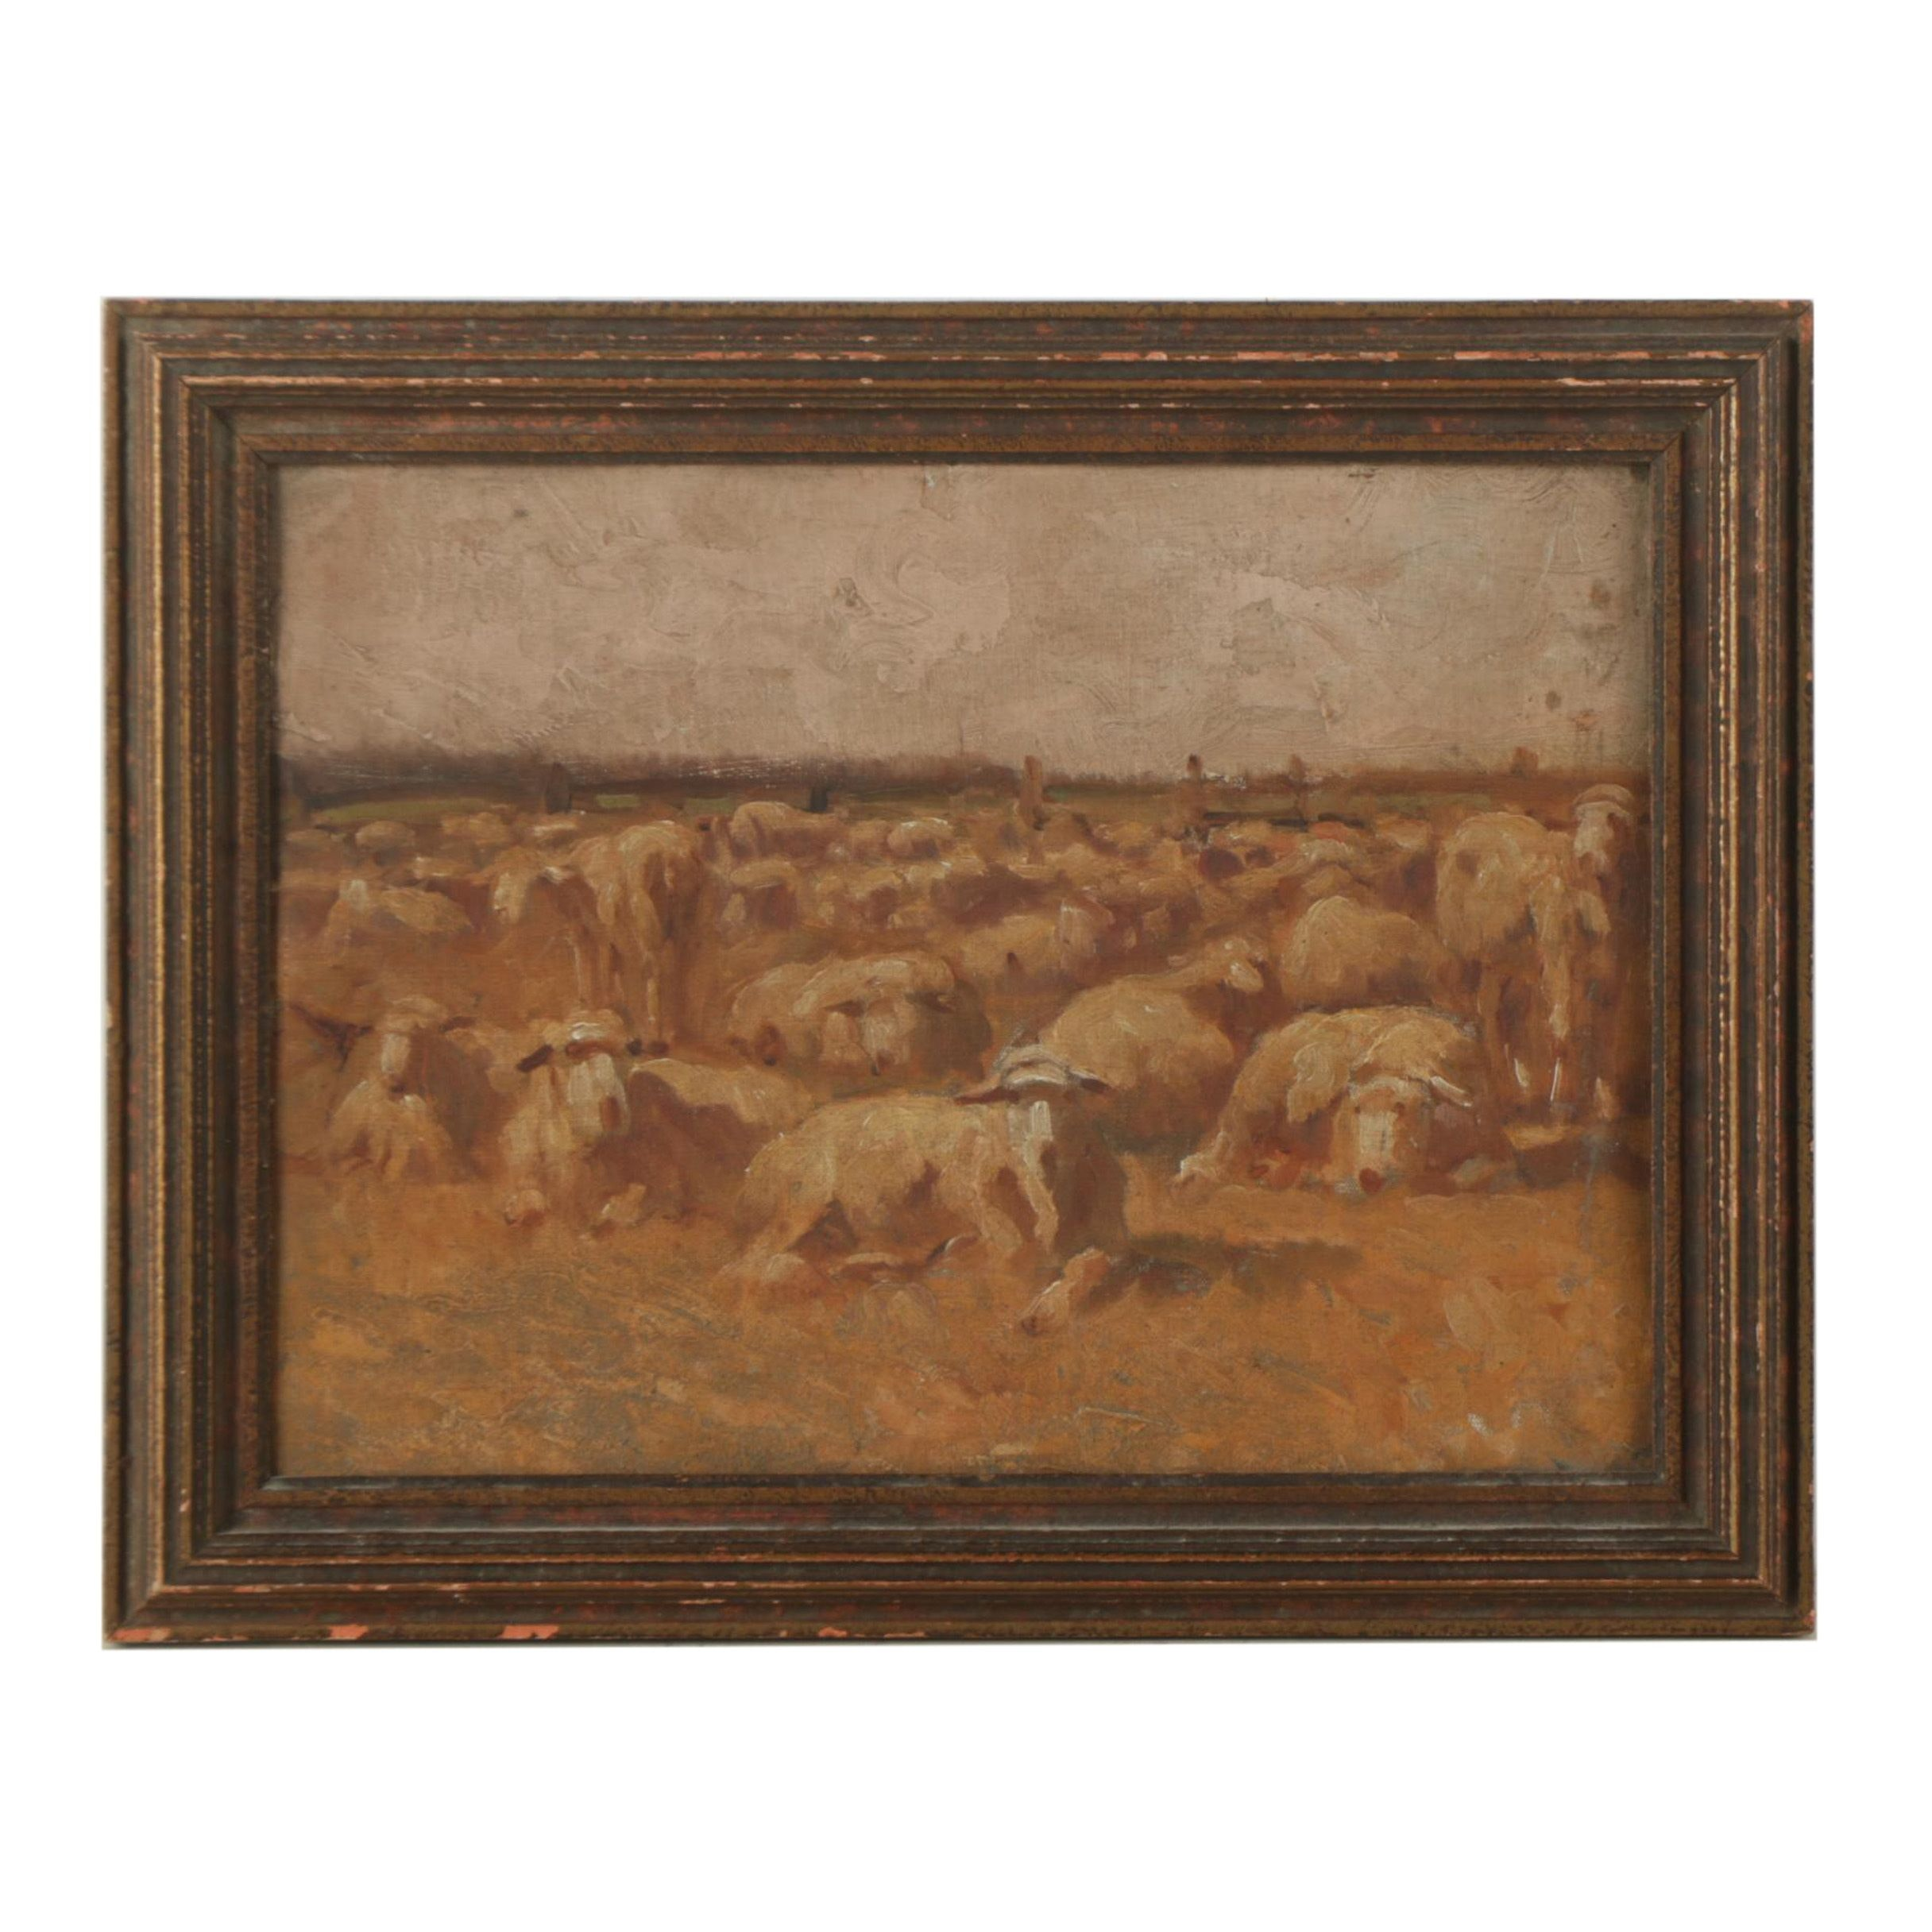 Oil Painting on Canvas Board of a Herd of Sheep